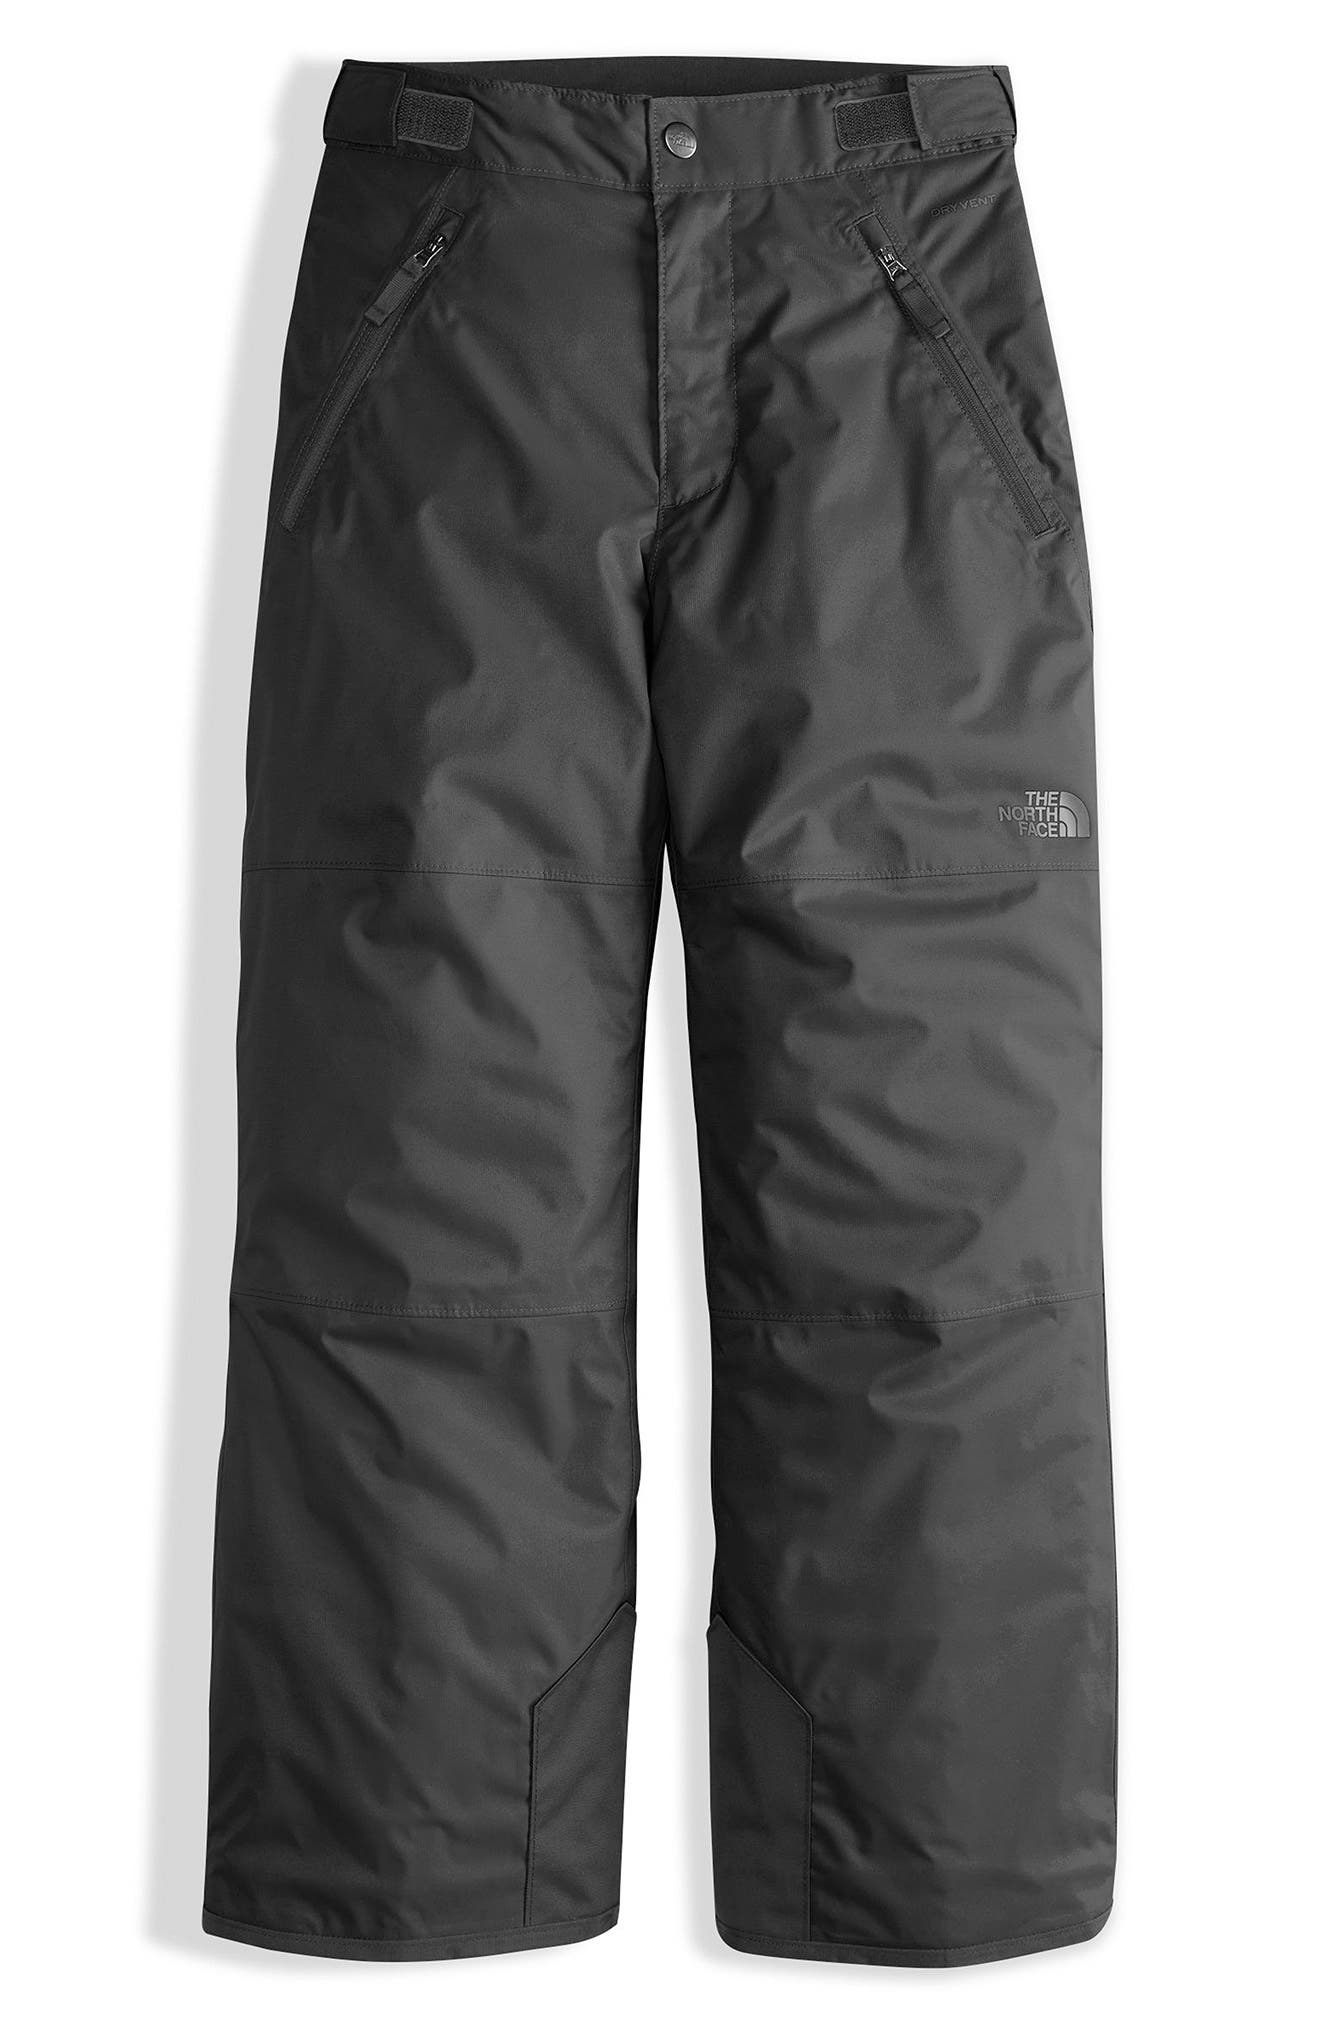 THE NORTH FACE, Freedom Waterproof Insulated Pants, Main thumbnail 1, color, 001